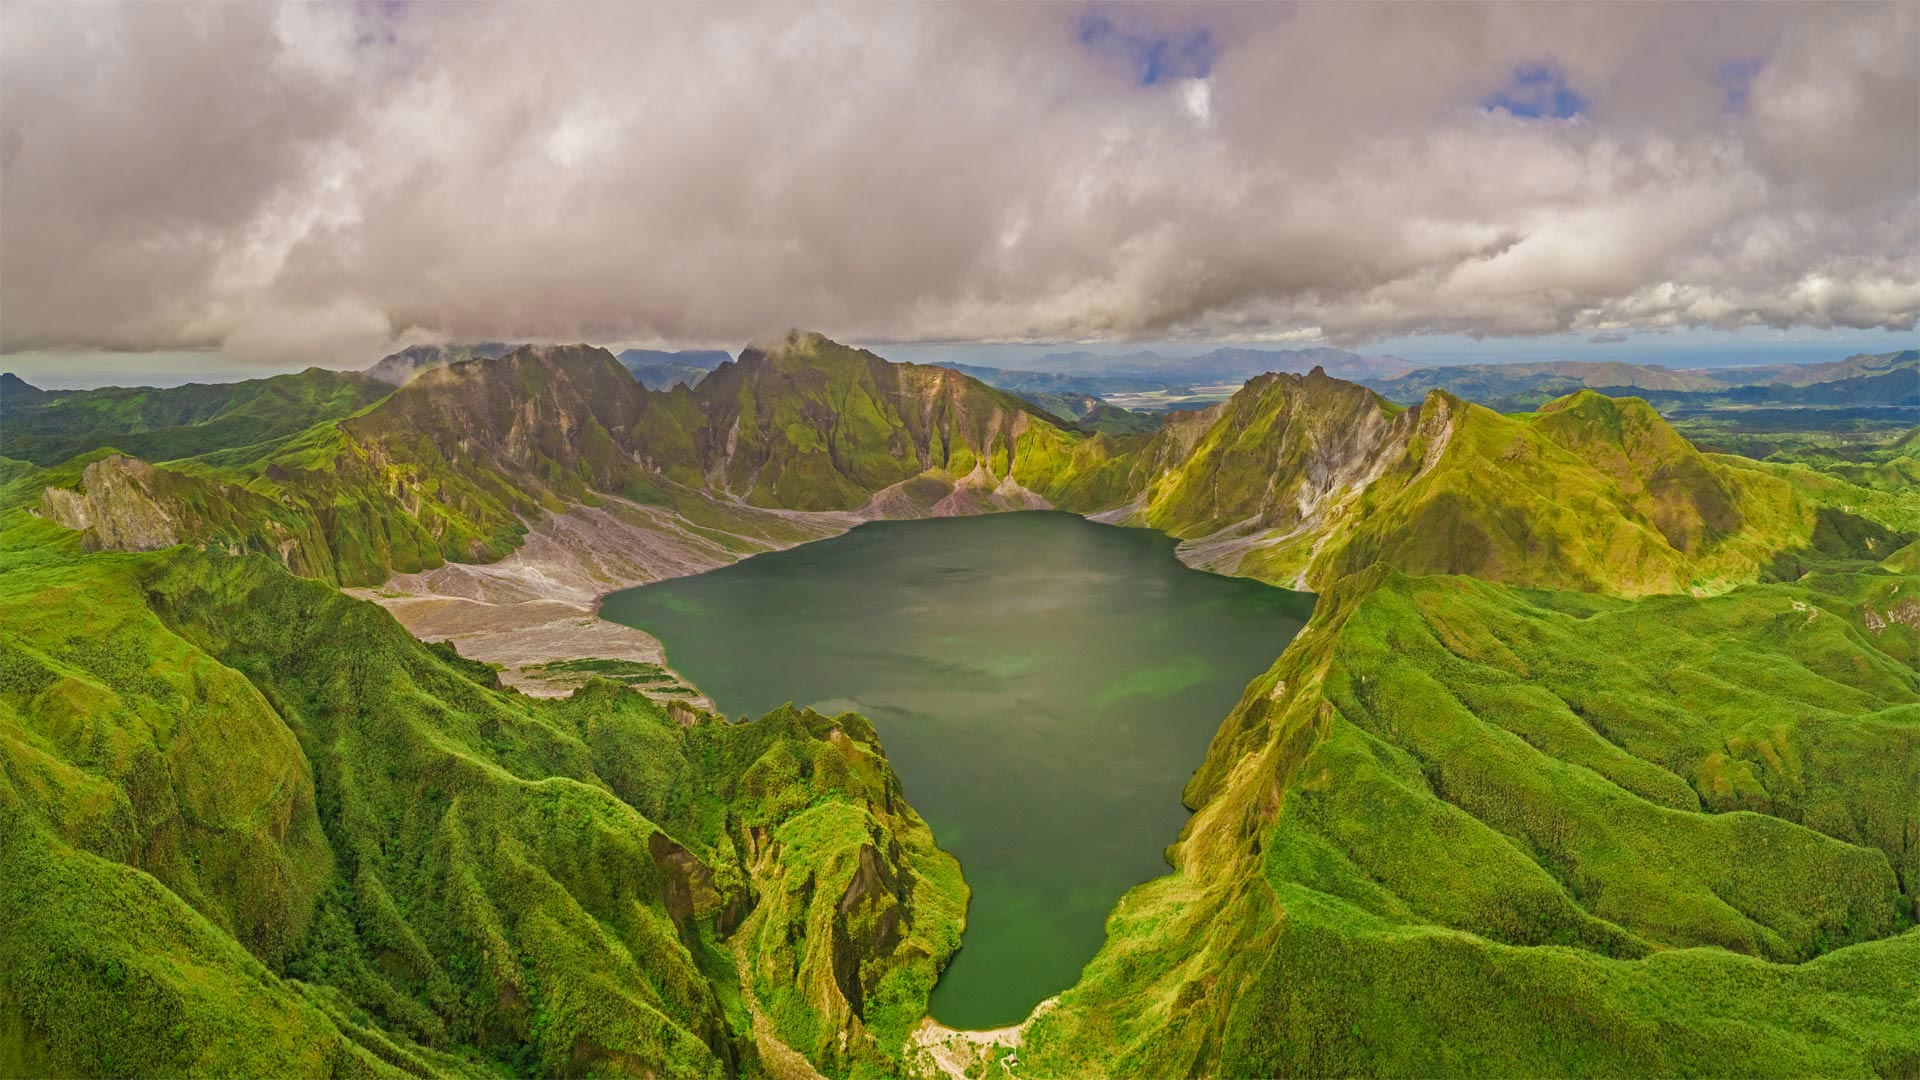 Aerial view of volcanic Lake Pinatubo and mountains, Luzon, Philippines (© Amazing Aerial Agency/Offset by Shutterstock)(Bing United States)